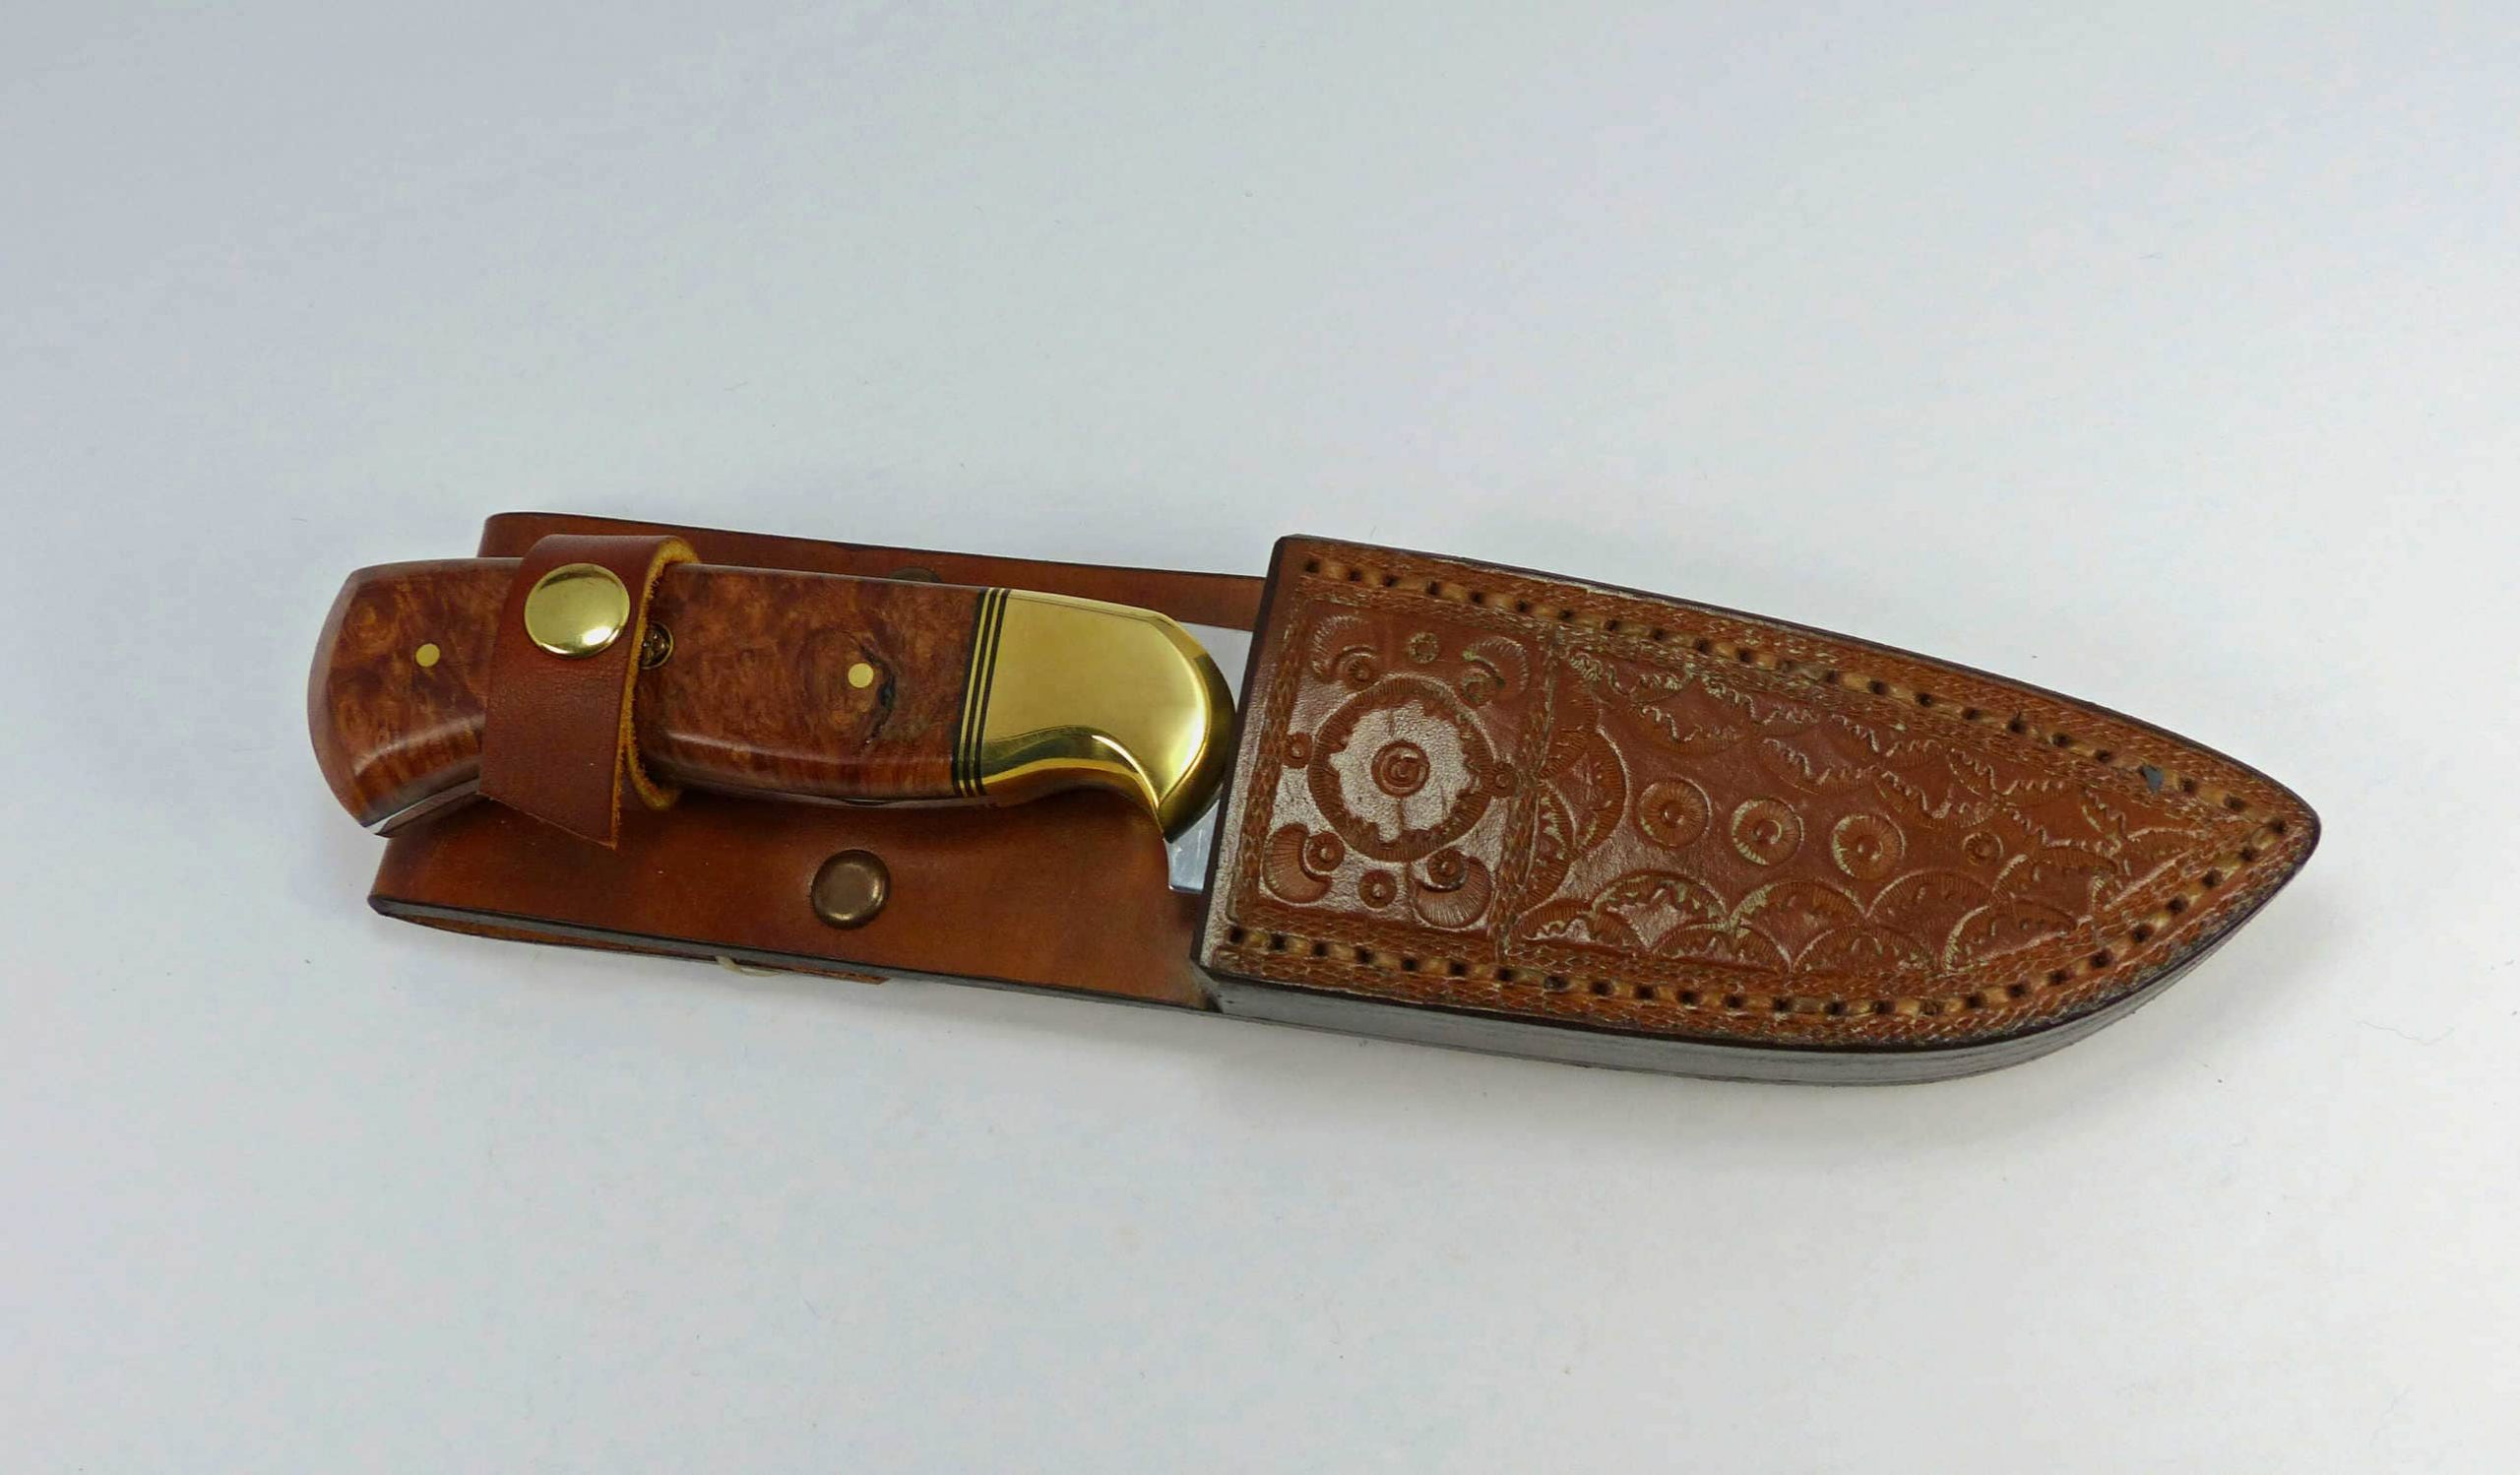 S6 - Burled elm knife with custom welted and fitted leather sheath